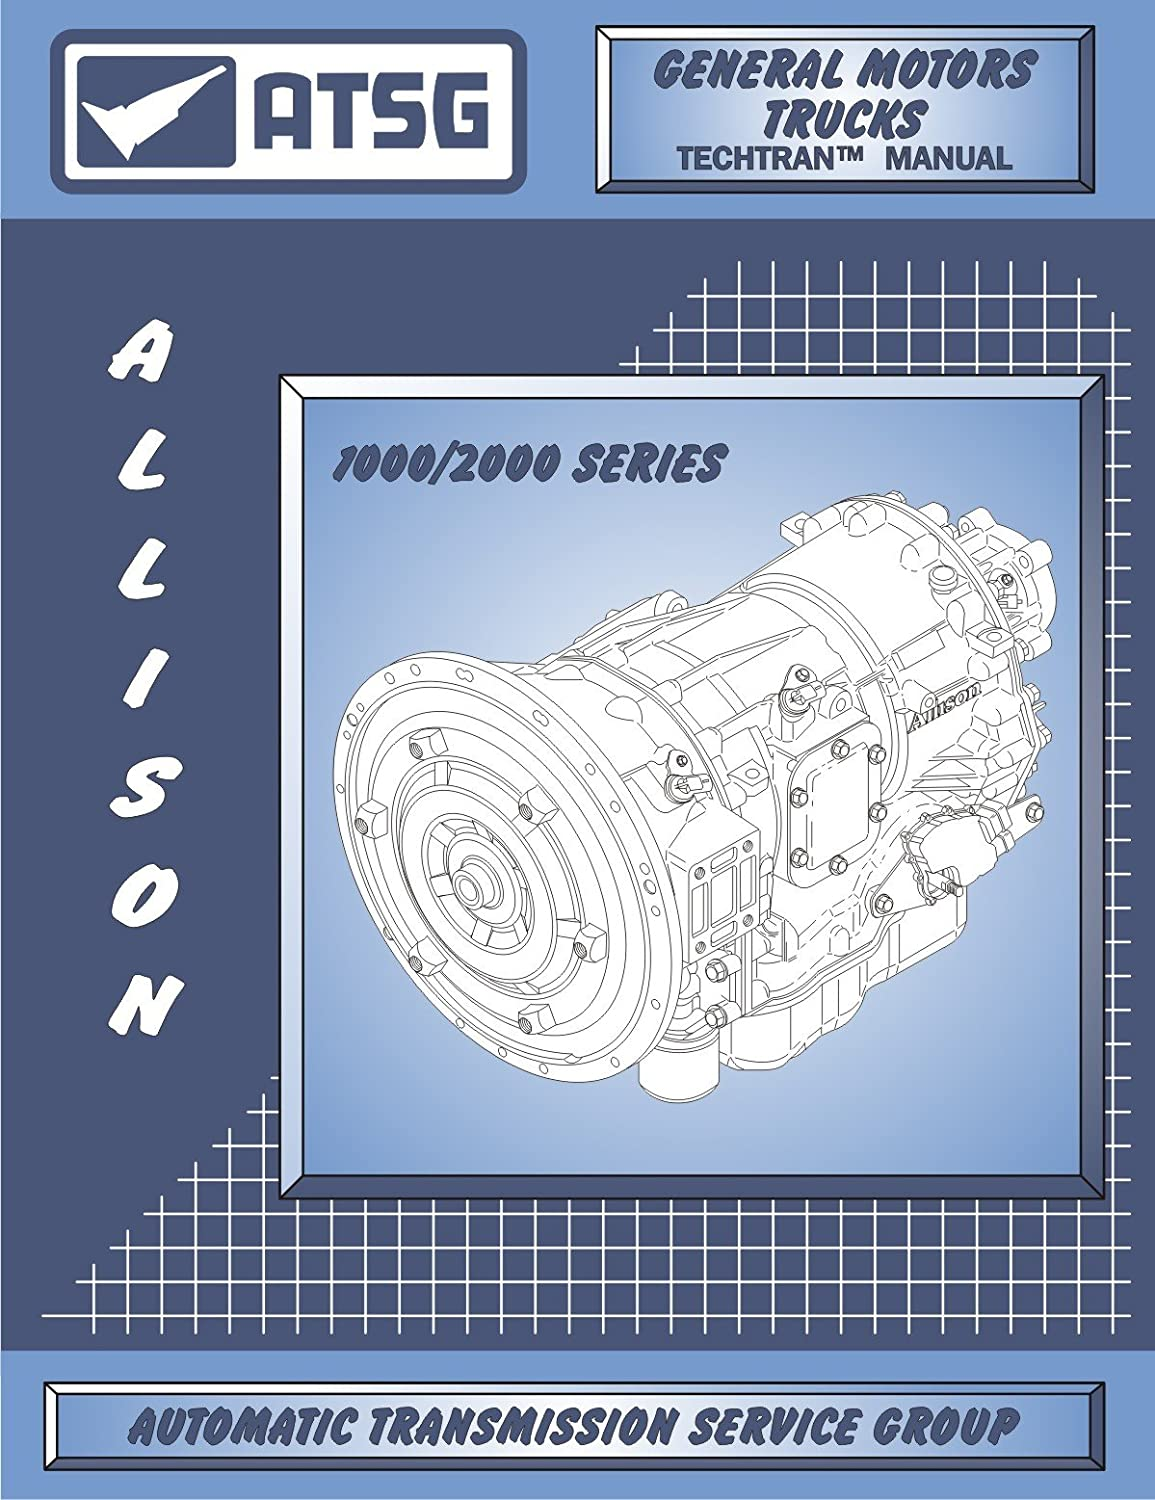 814Vy0qw1%2BL._SL1500_ amazon com atsg allison 1000 2000 transmission repair manual allison 2000 series wiring diagram at suagrazia.org